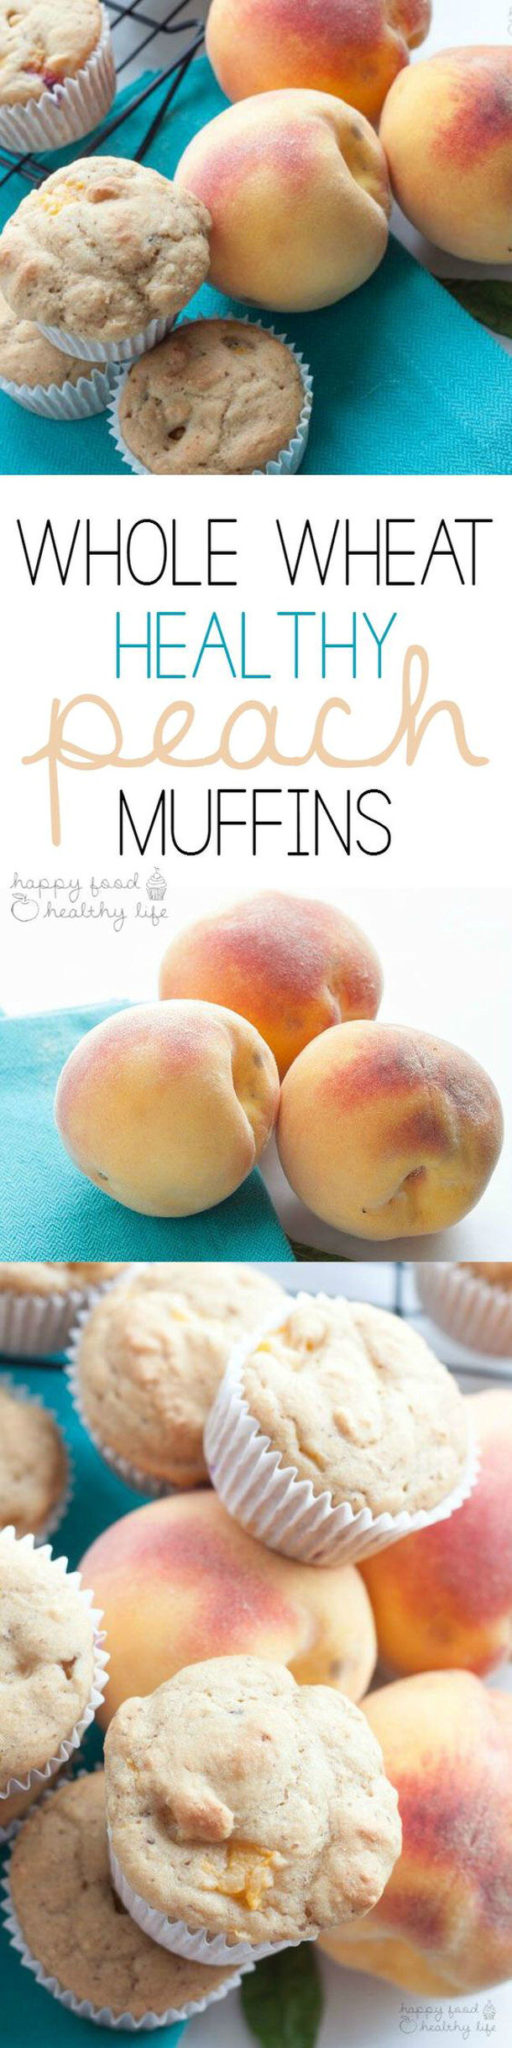 Healthy Snacks - Whole Wheat Healthy Peach Muffins Recipe via Happy Food Healthy Life #healthysnacks #healthytreats #healthyafterschooltreats #healthyrecipes #healthyfood #healthy #healthydesserts